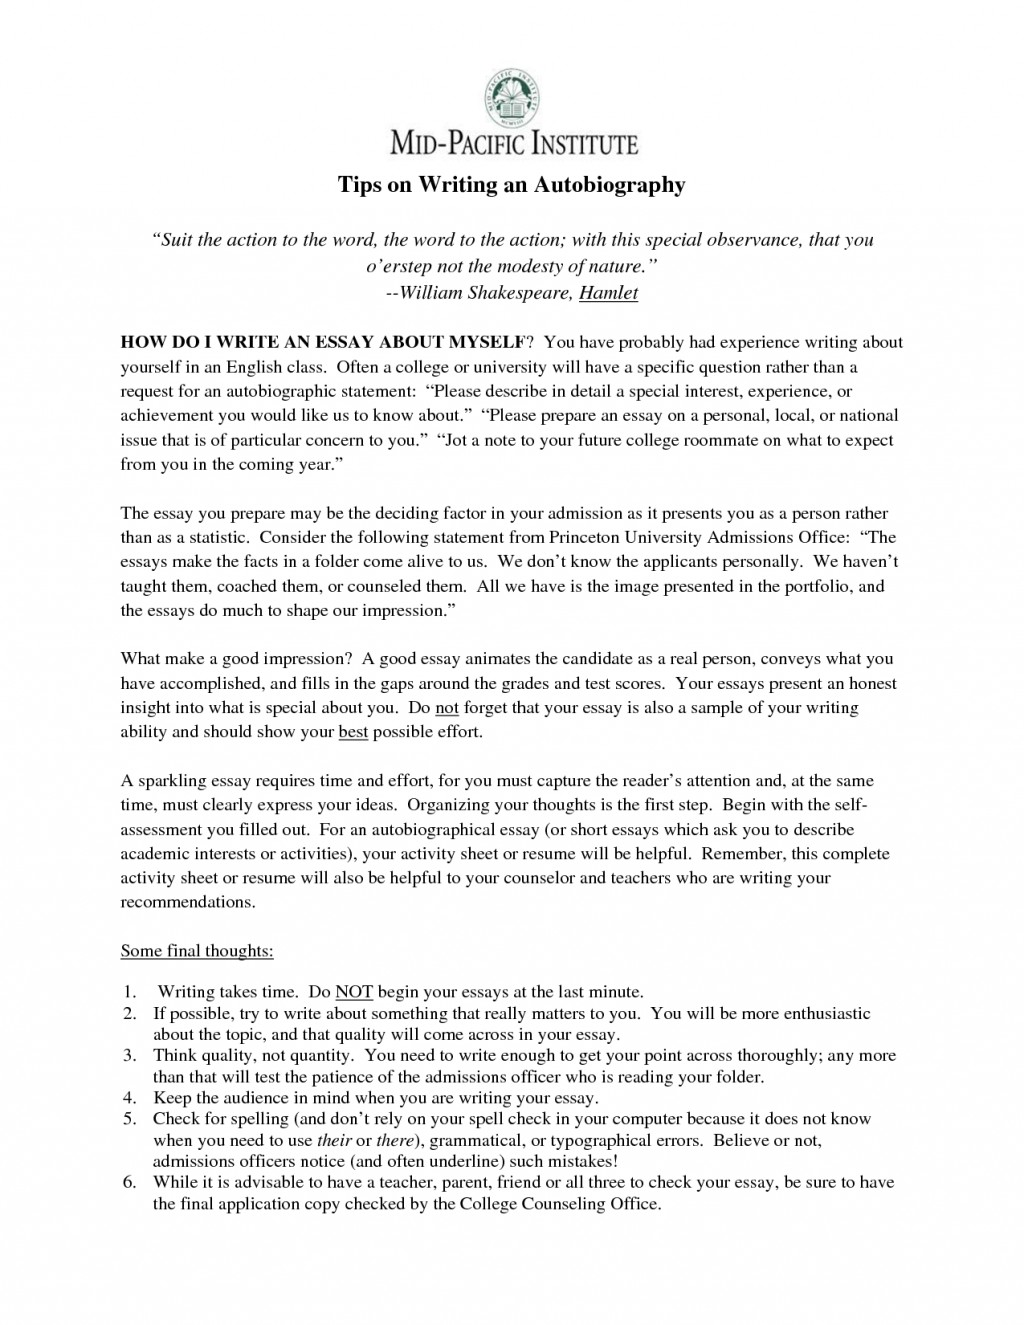 012 Tips To Write Good Essay Help Me An About Myself How For Writing Persuasive With English L College Great Scholarship Narrative Sat Application Argumentative Marvelous A Descriptive Large